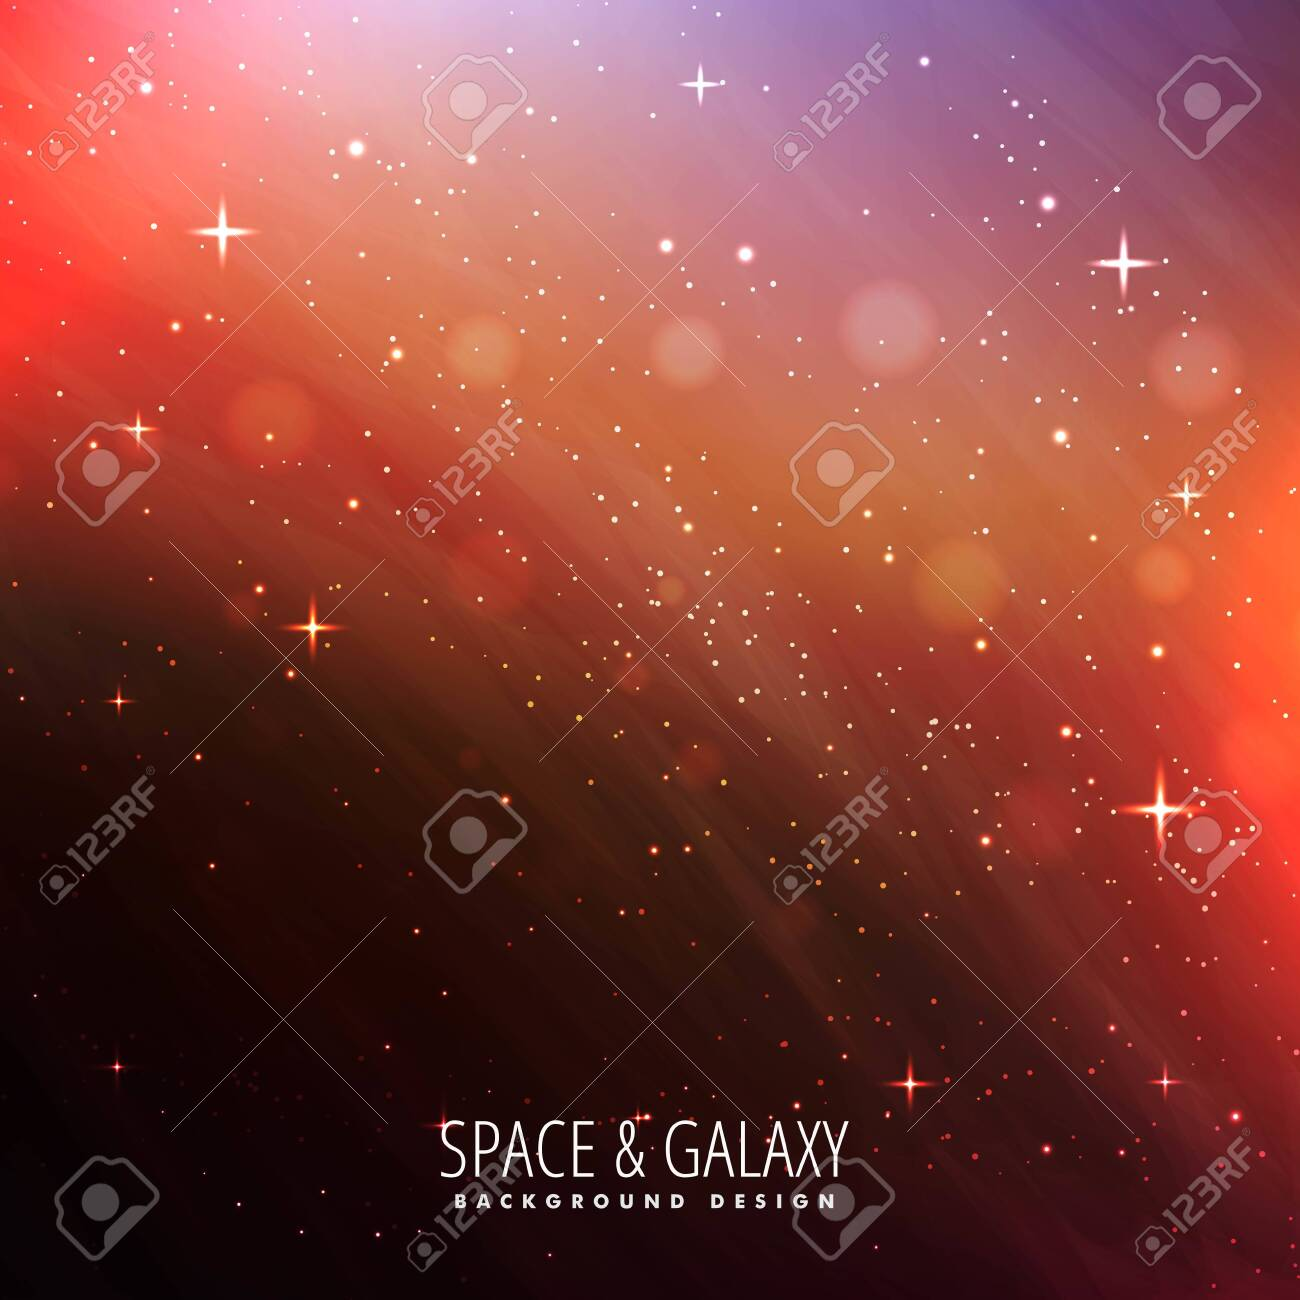 abstract colorful beautiful universe stars galaxy background - 153003882